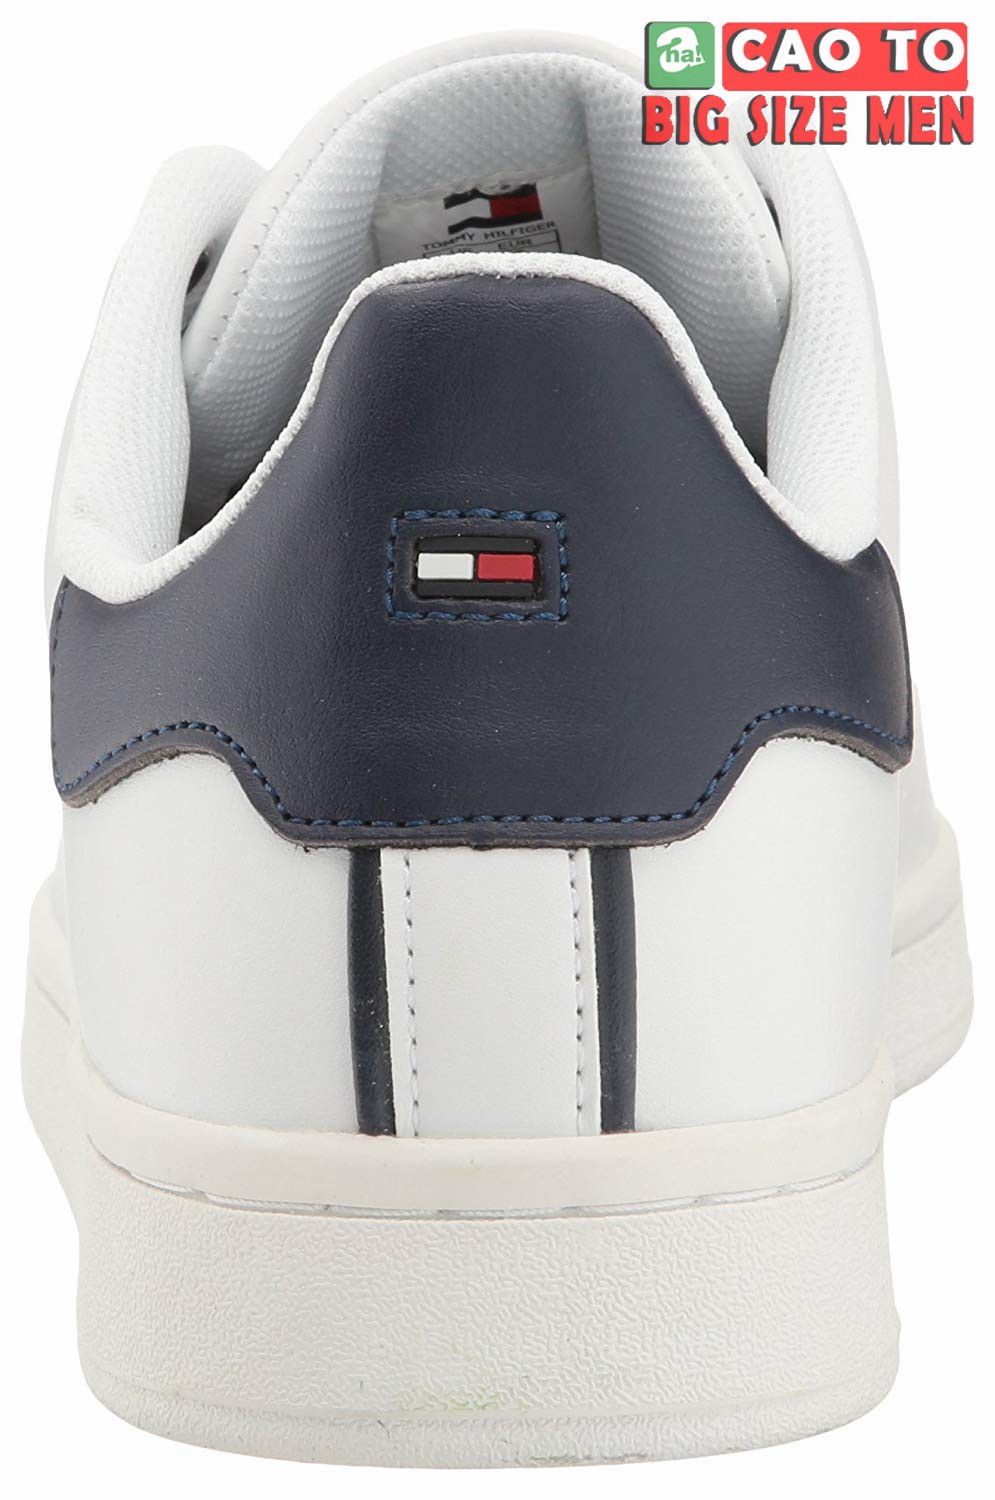 Giày Sneakers Tommy Hilfiger White Big Size